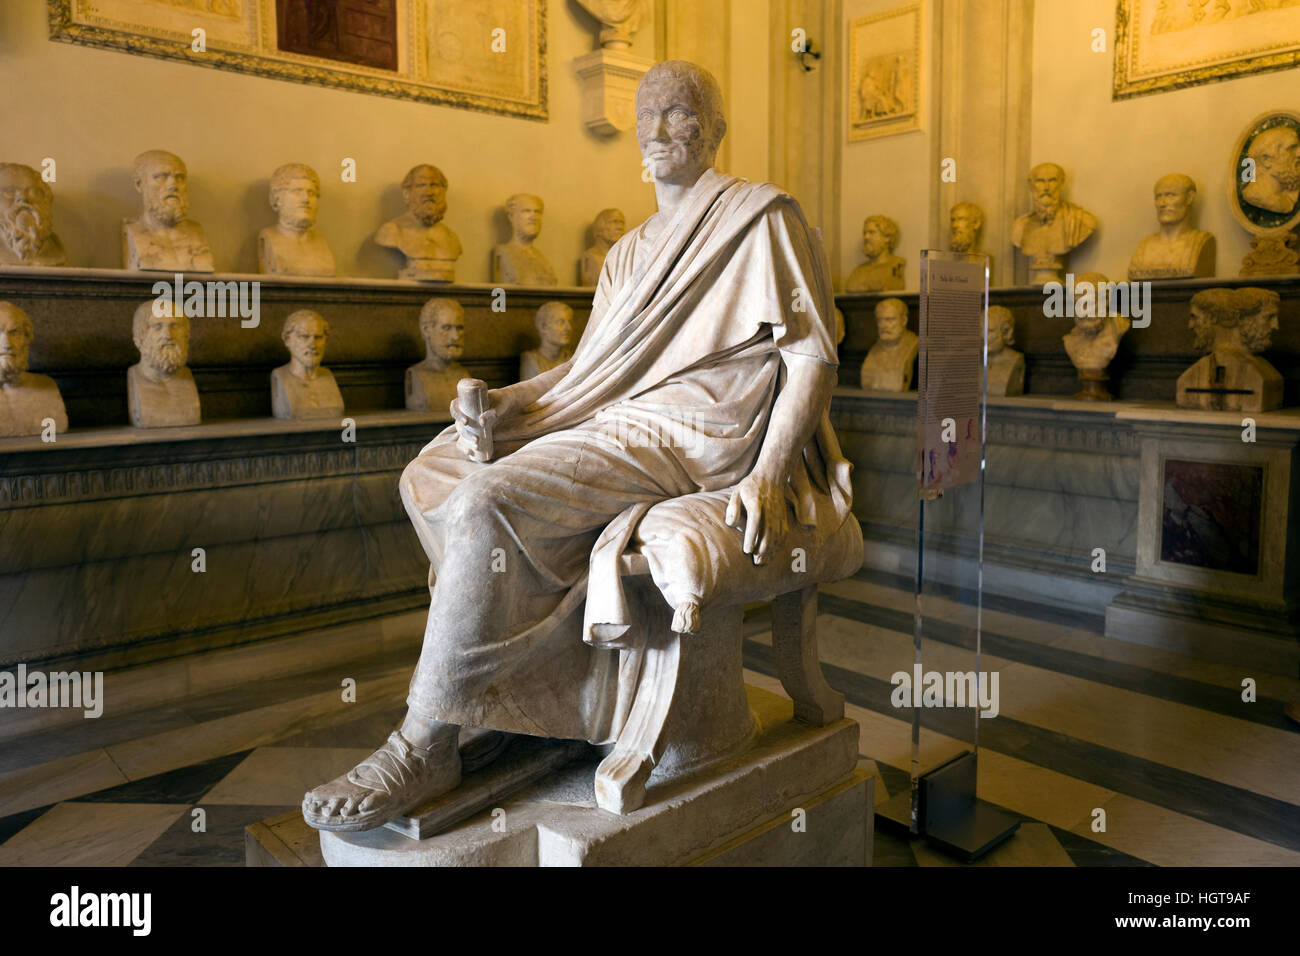 roman art in the emperor hall exhibited at the Capitoline Museum in Rome Stock Photo